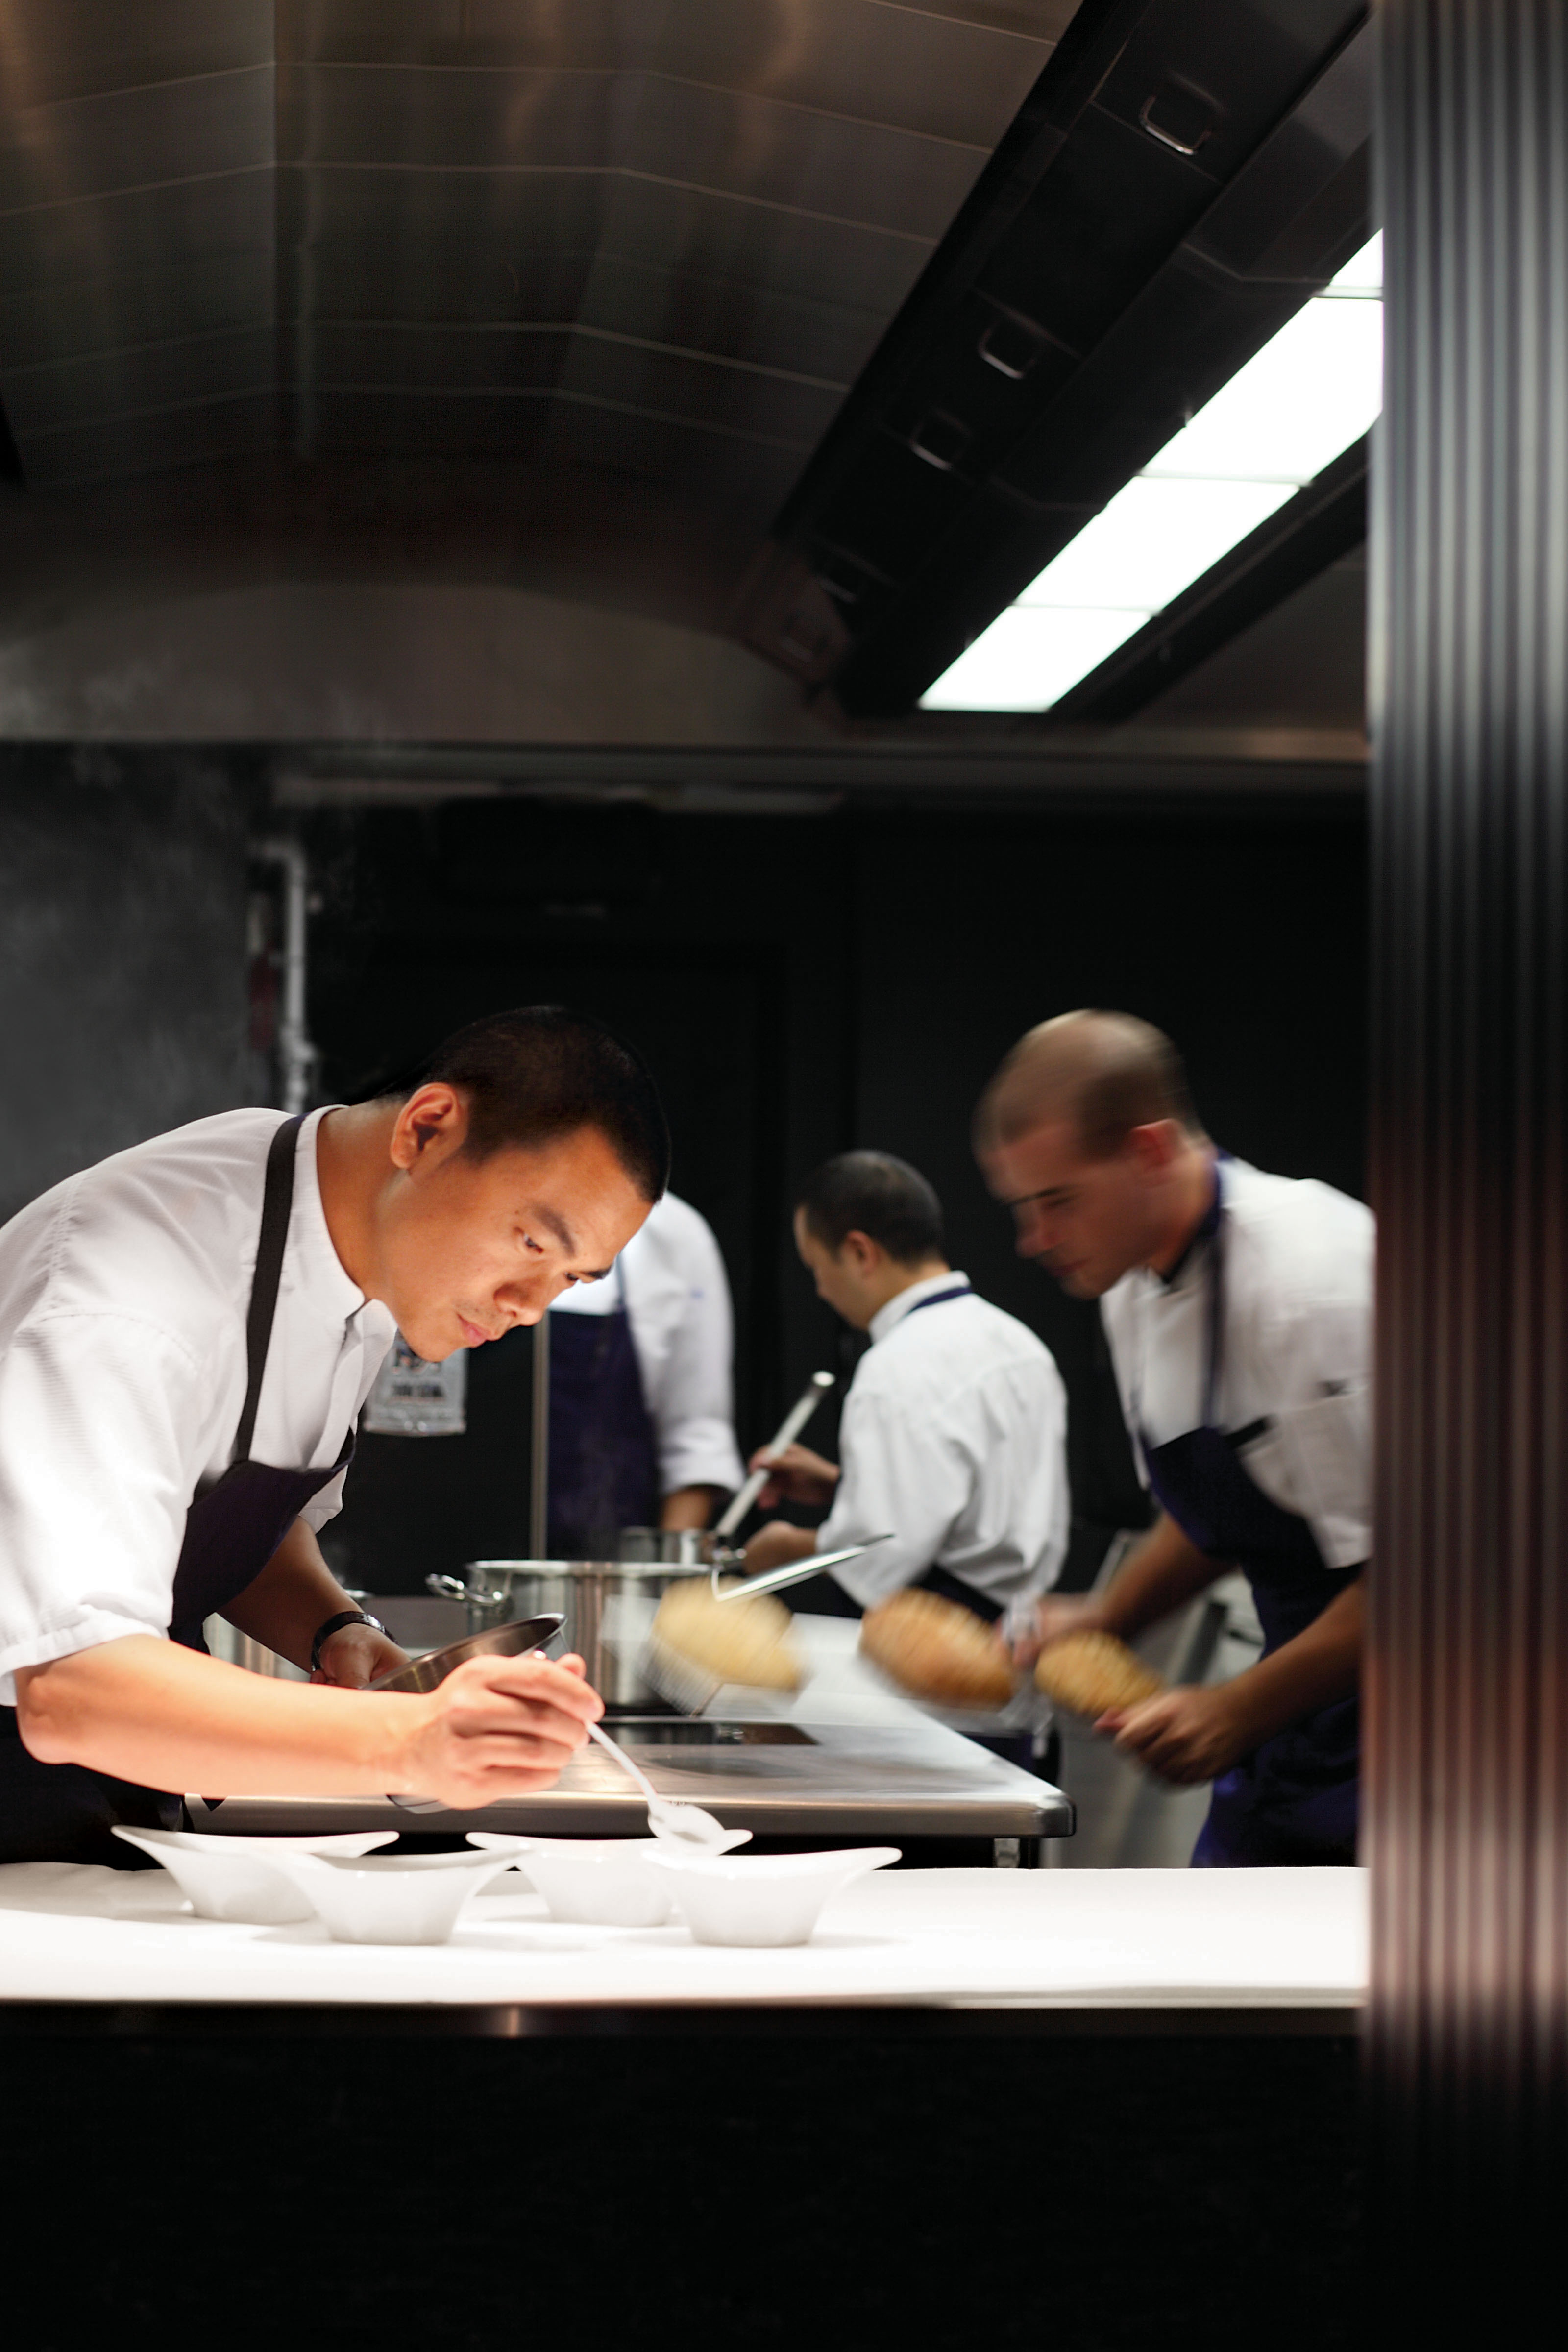 Taiwan-born chef Andre Chiang (left) at work.